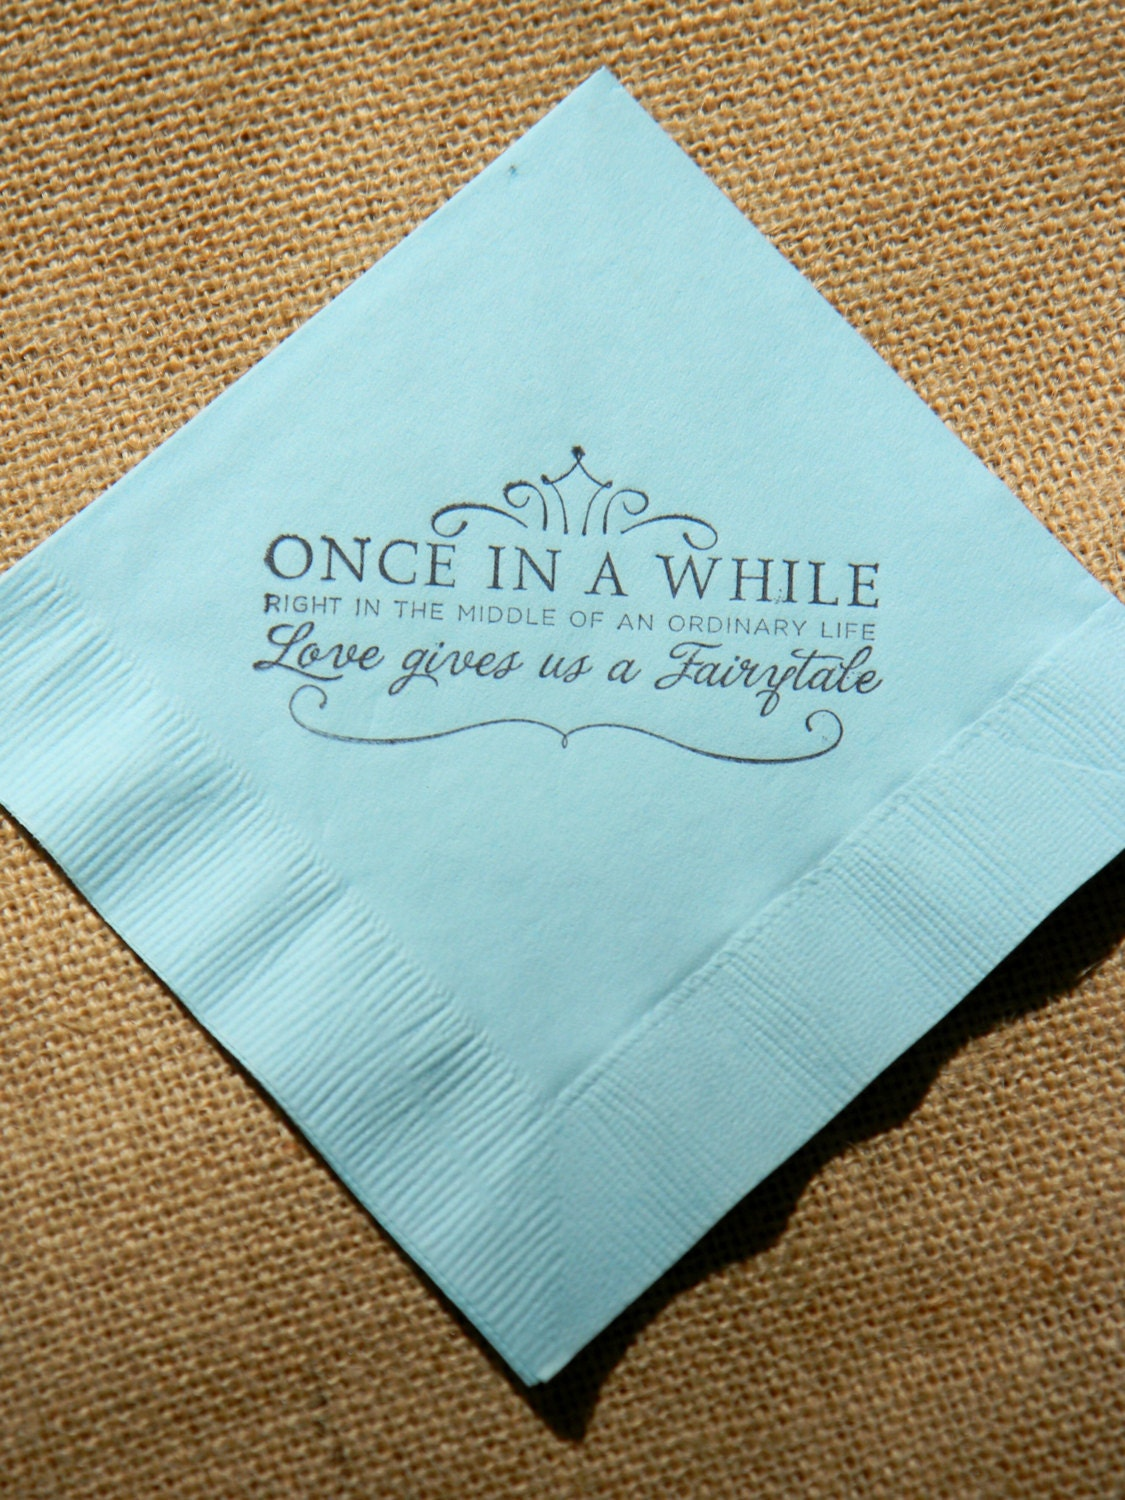 Wedding Wedding Cocktail Napkins fairytale love light blue paper wedding cocktail napkins once